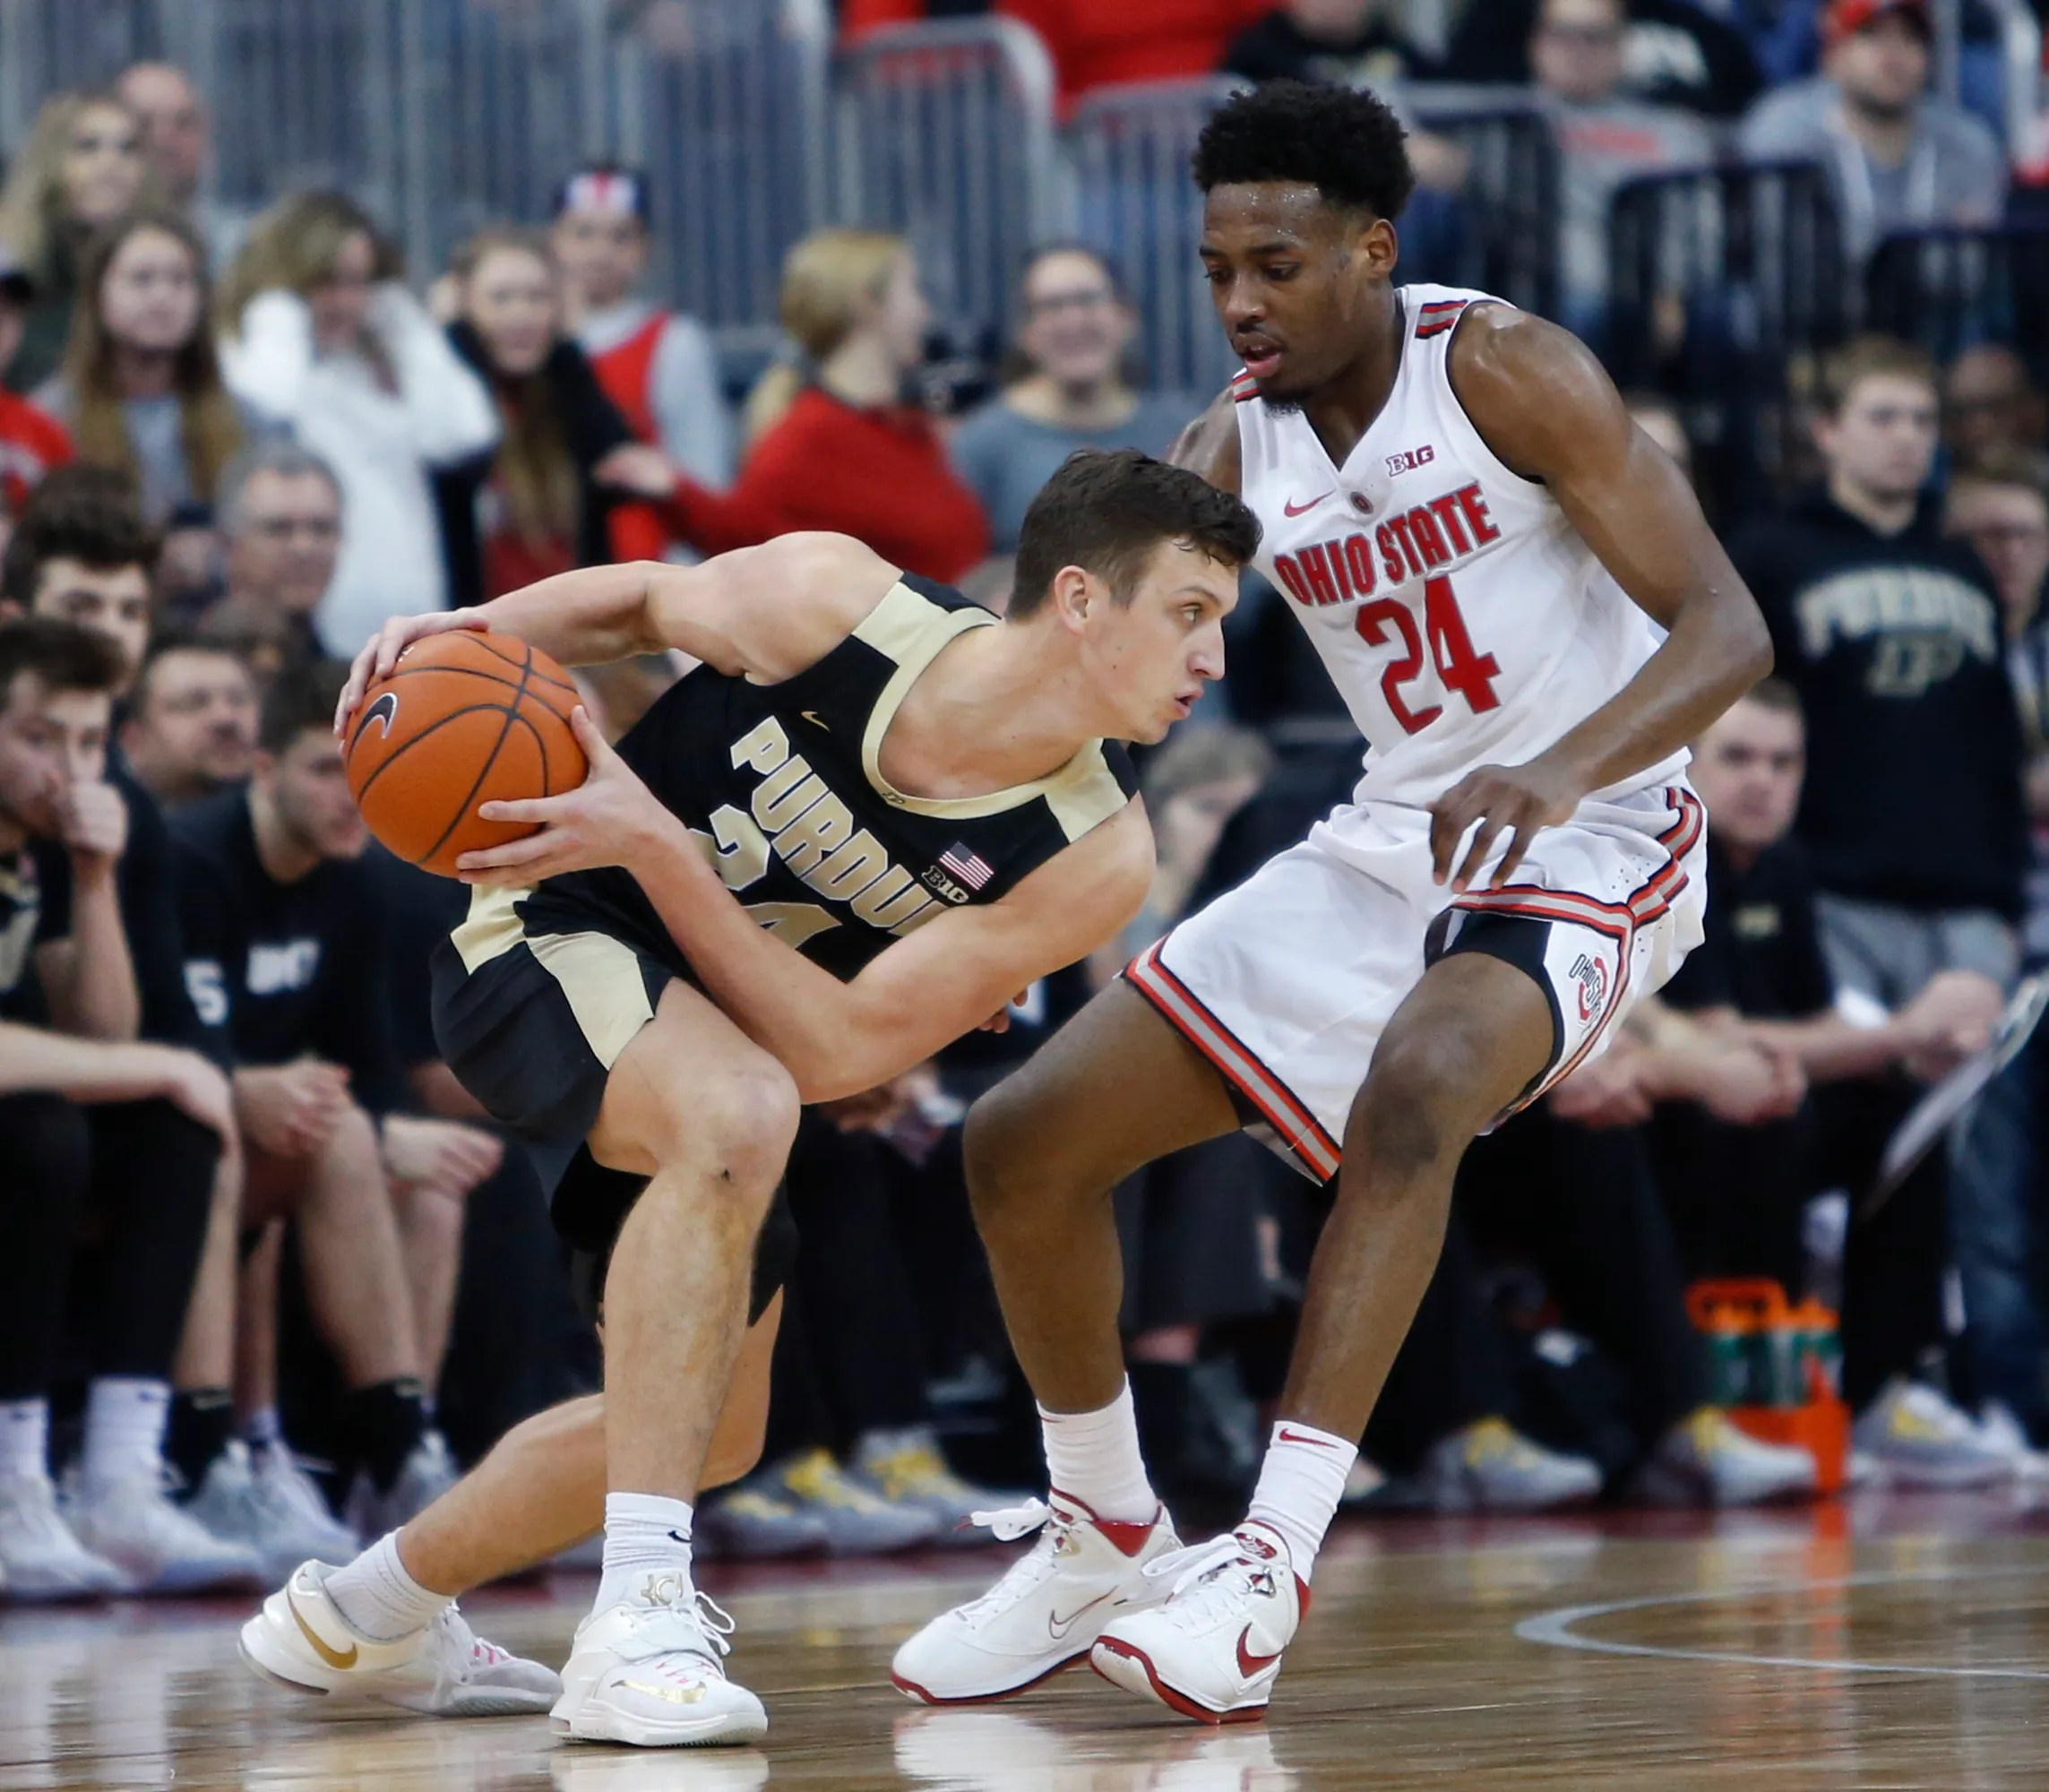 Grady Eifert's grit helping Purdue men's basketball win